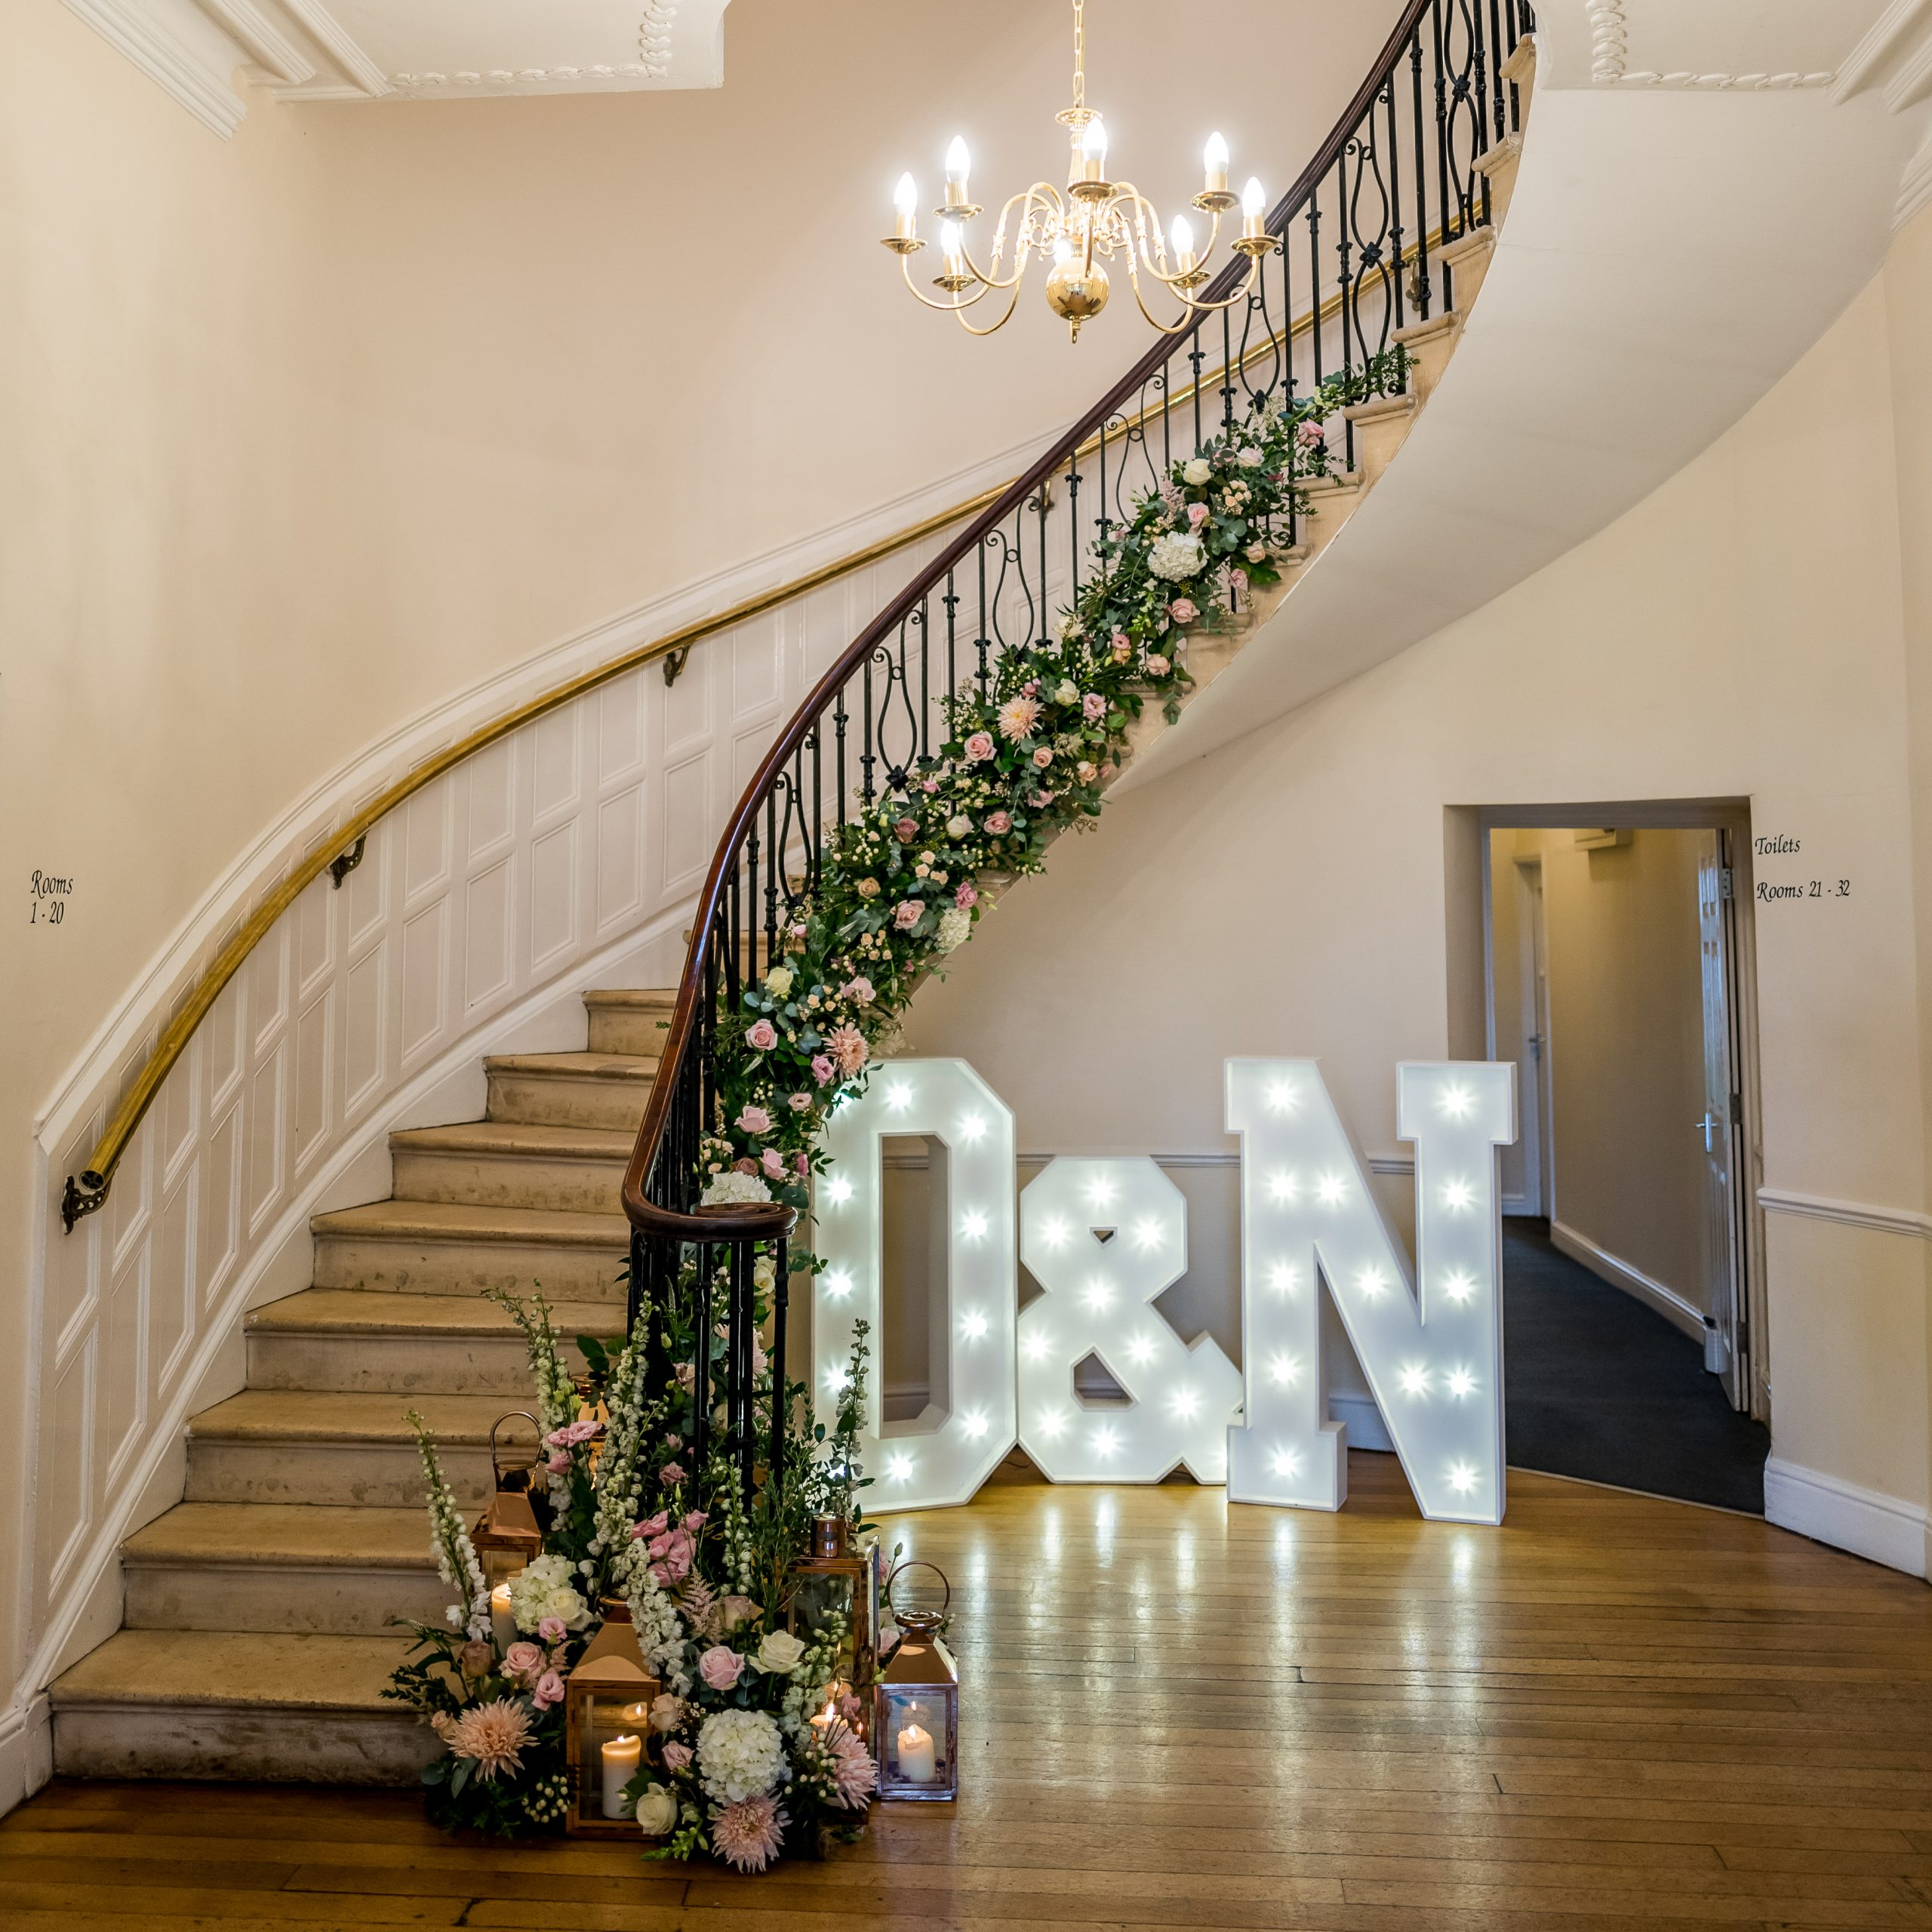 wedding flowers at eastington park staircase decorated with flowers large light-up letters